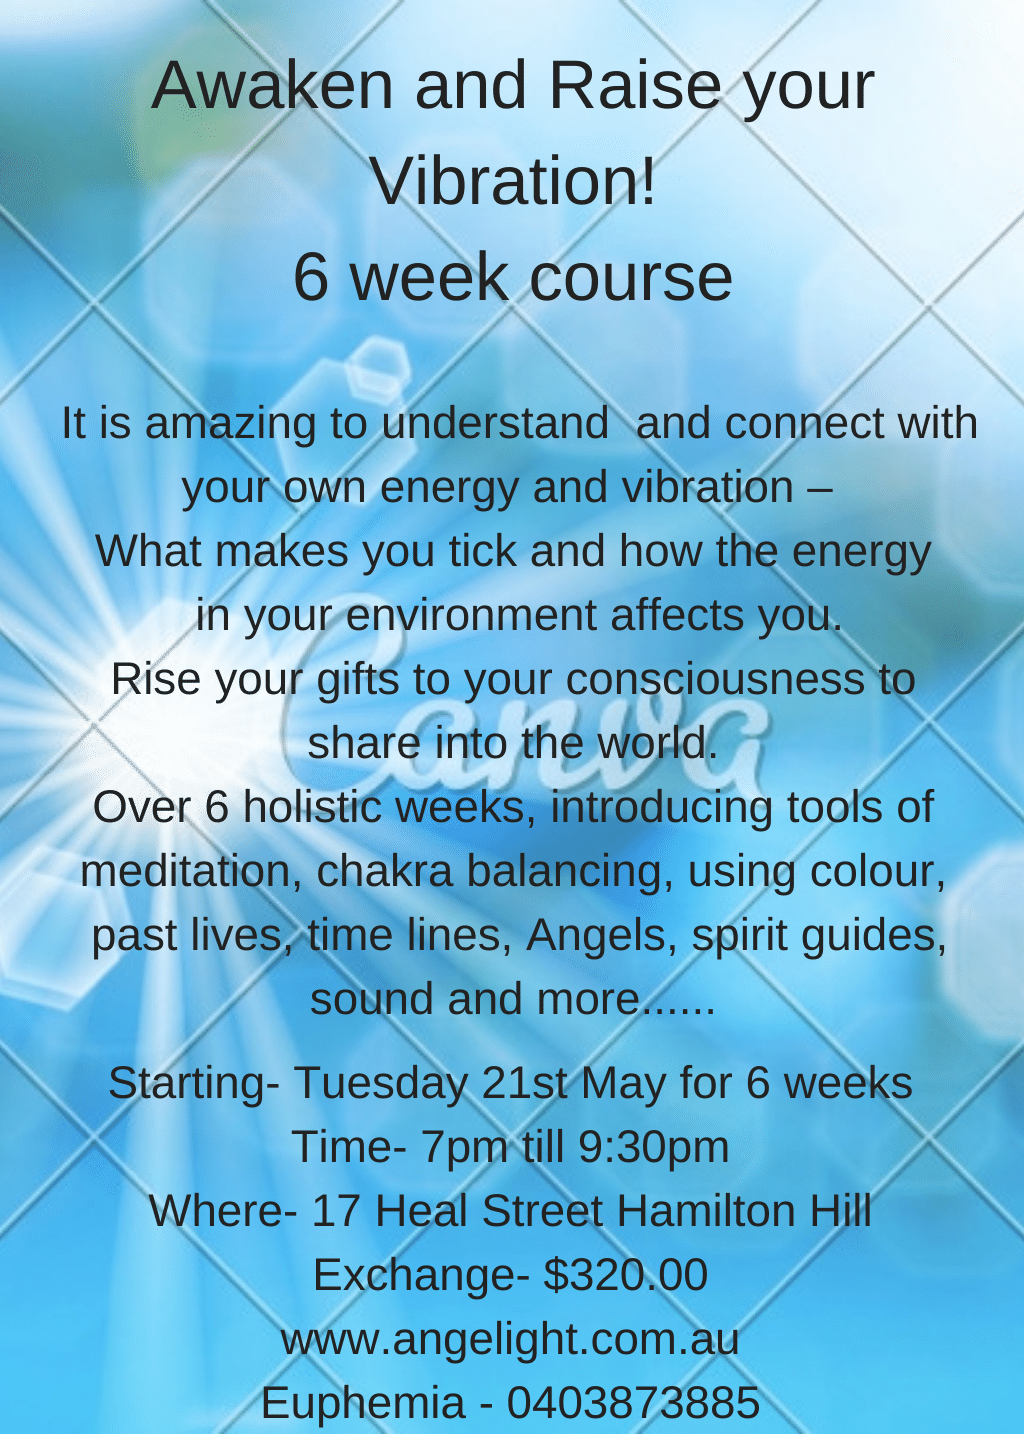 Awaken and Raise your Vibration 6 week course starting 21st May 7pm